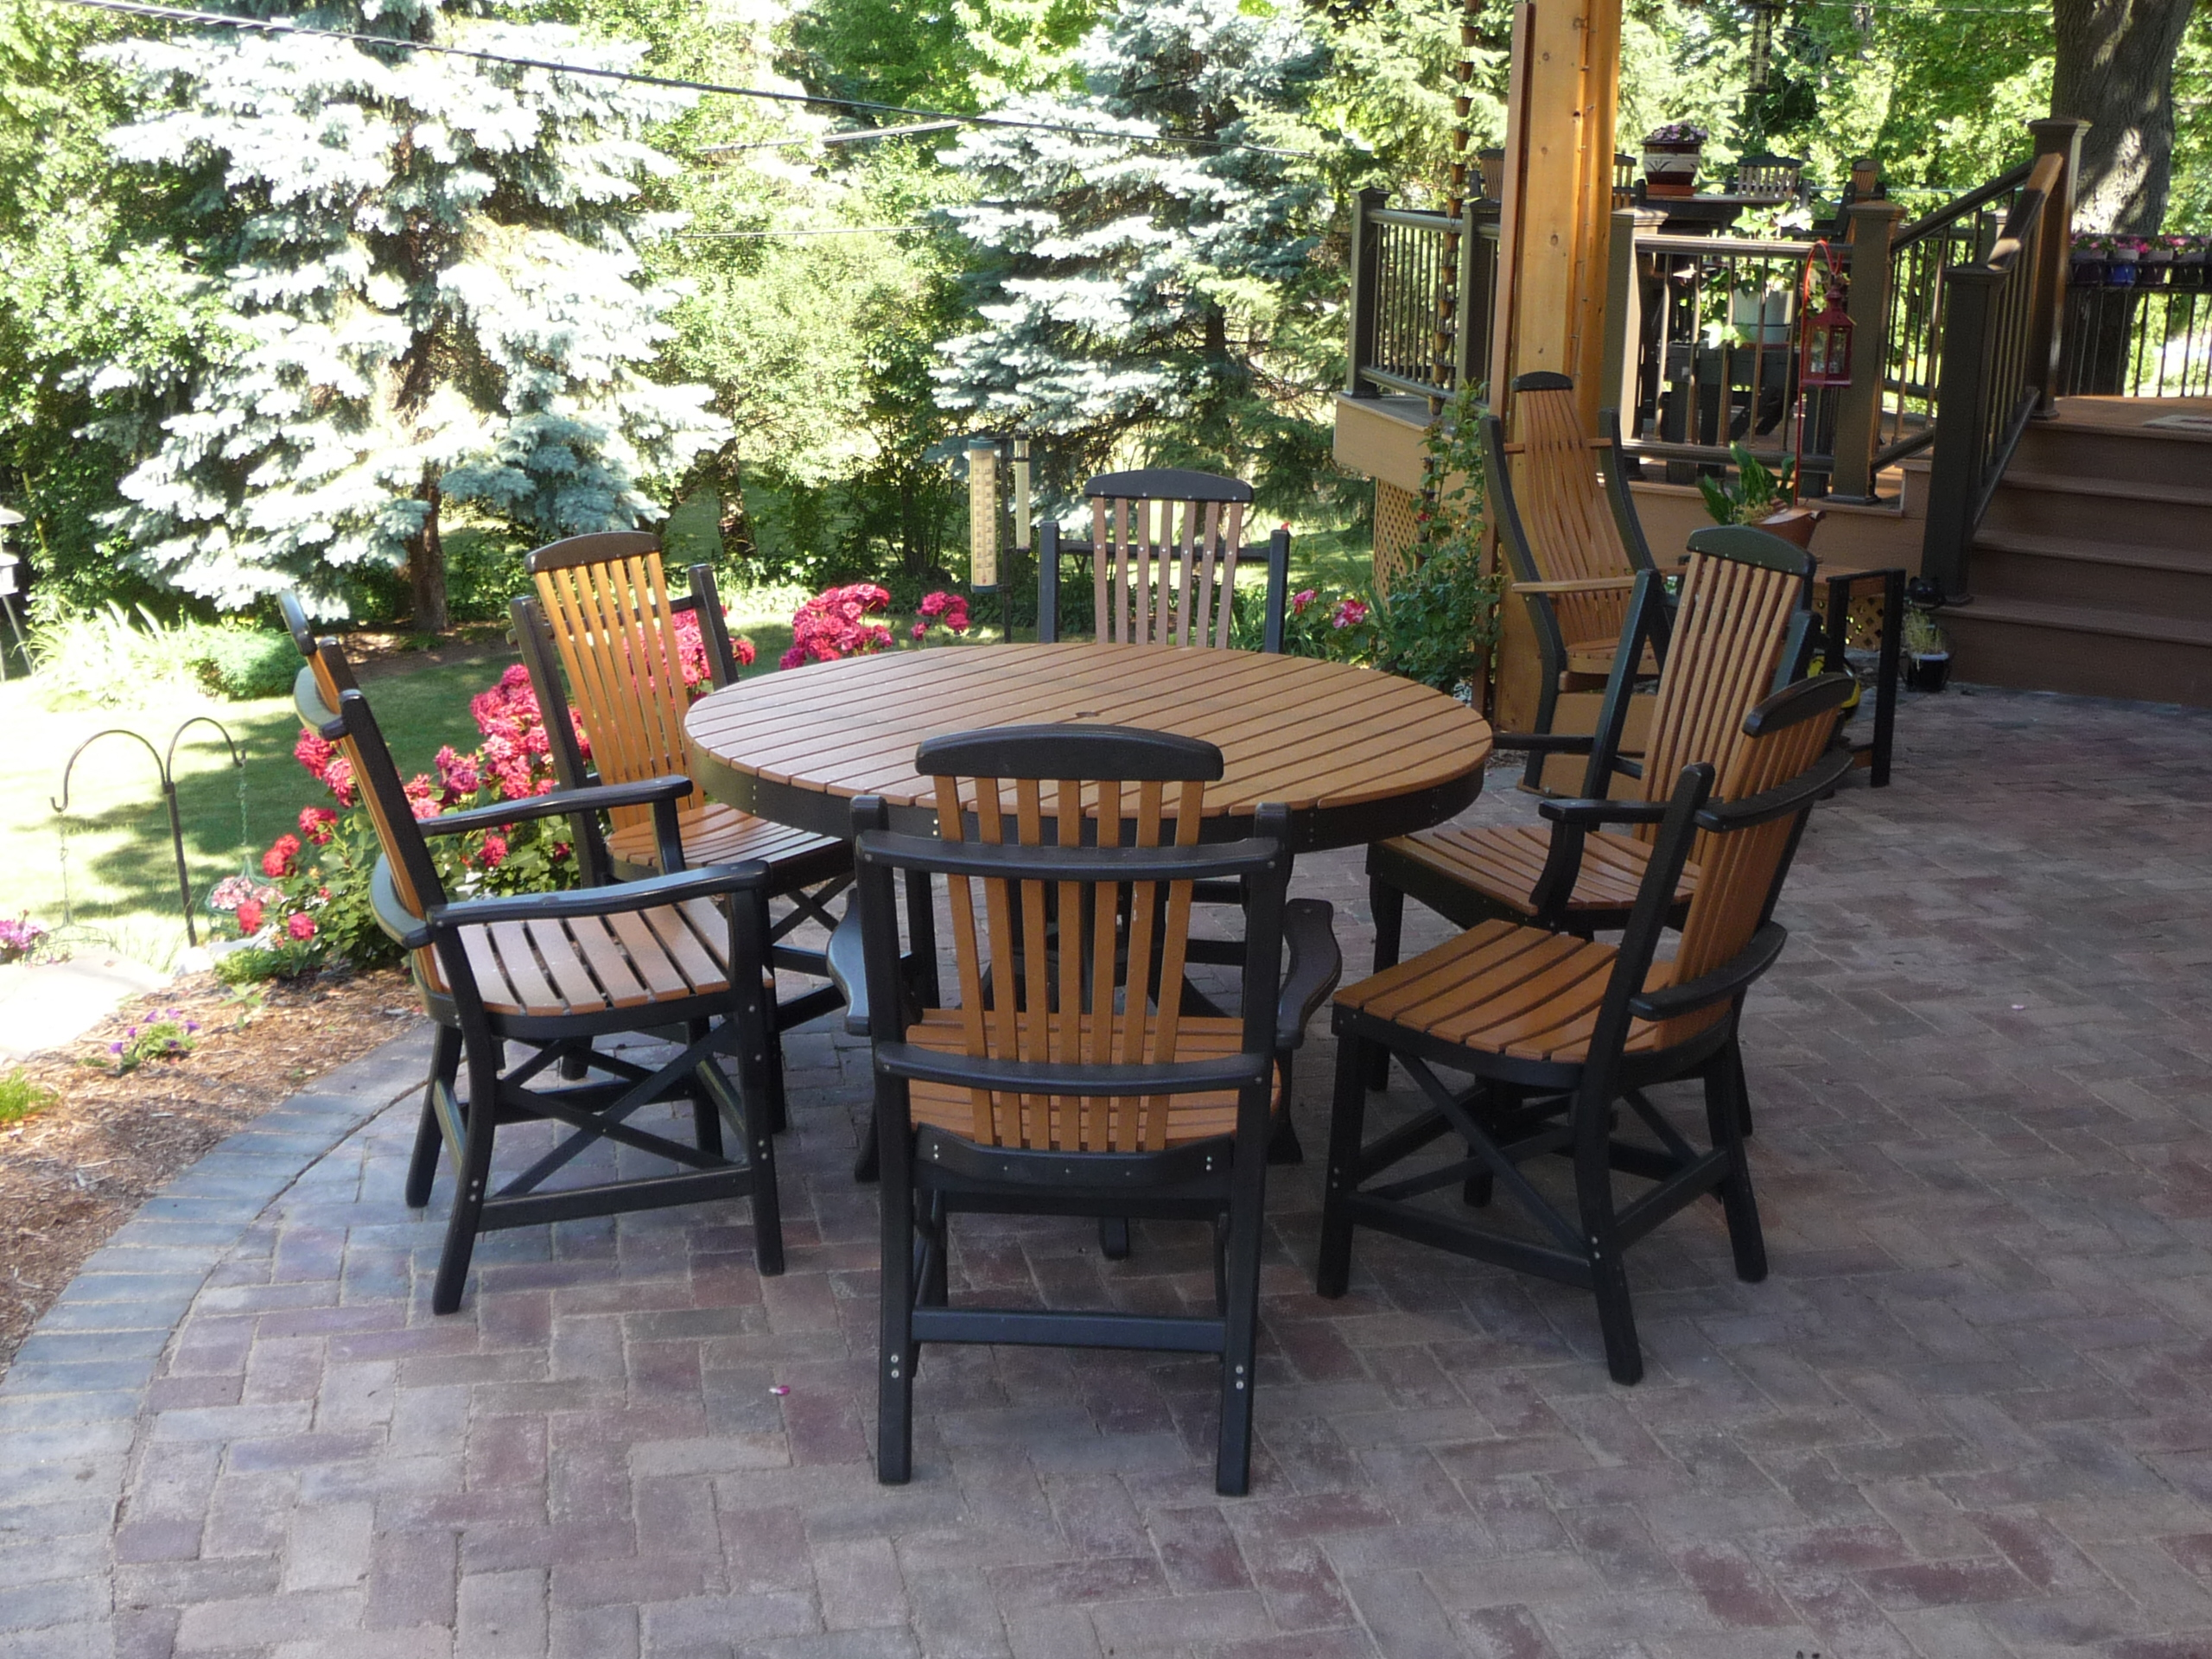 Patio and Chairs